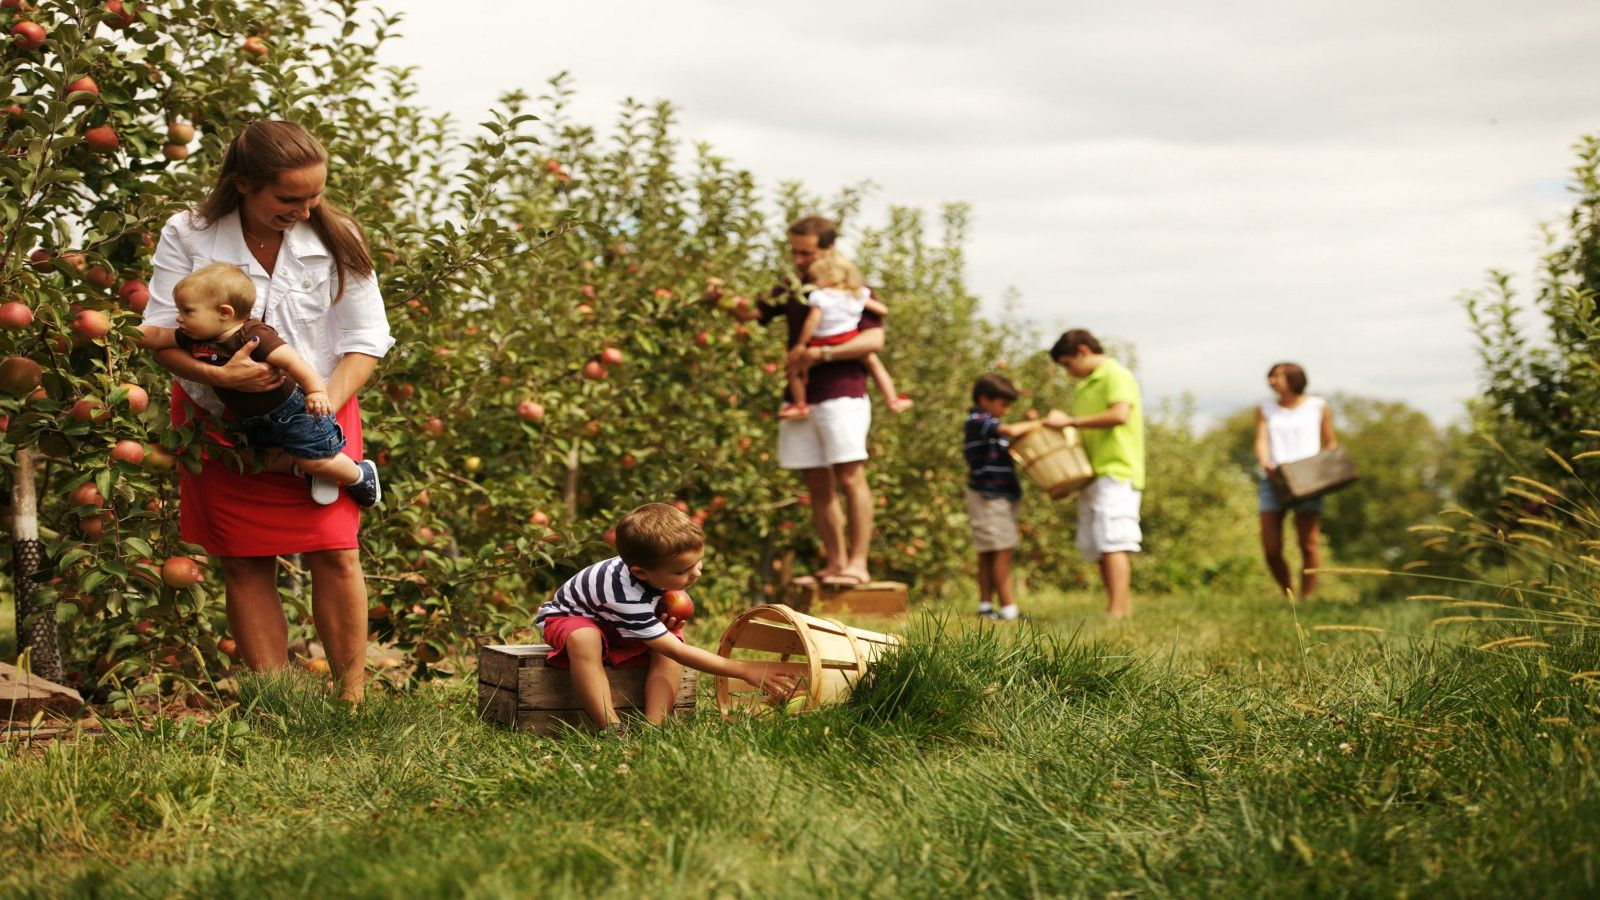 Things to do in Gettysburg, PA - Apple Picking